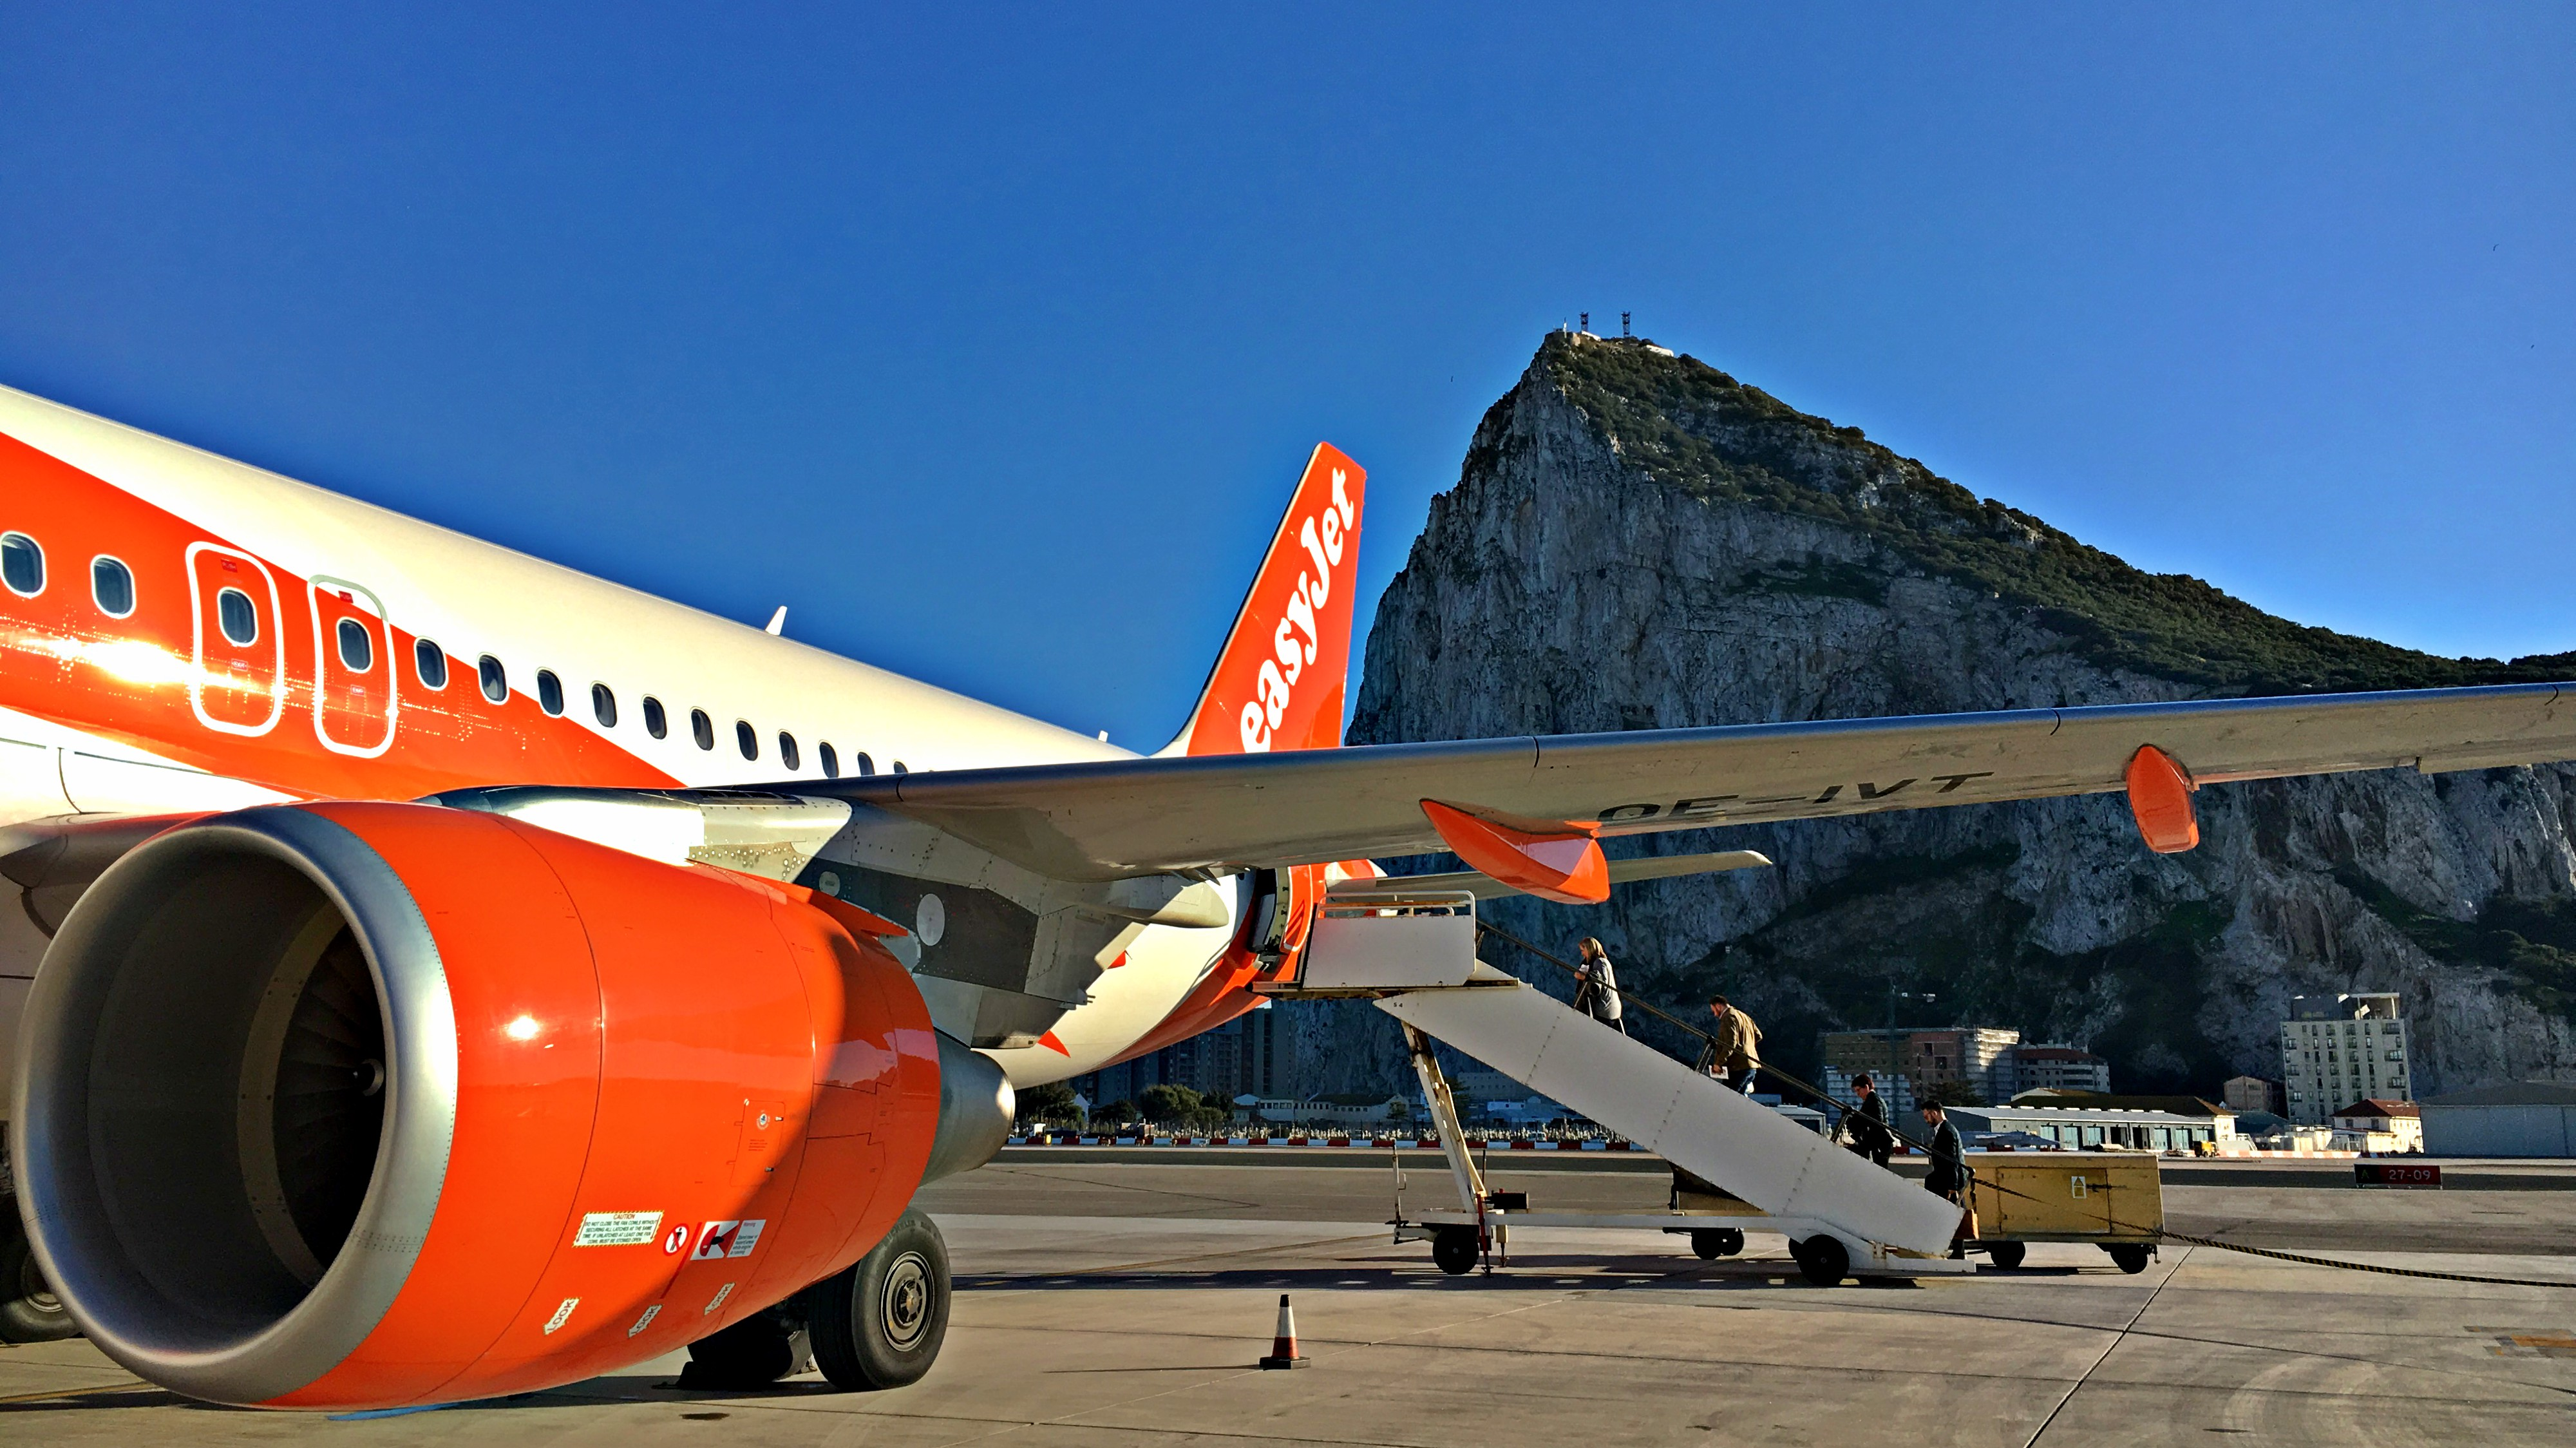 Spain to Gibraltar